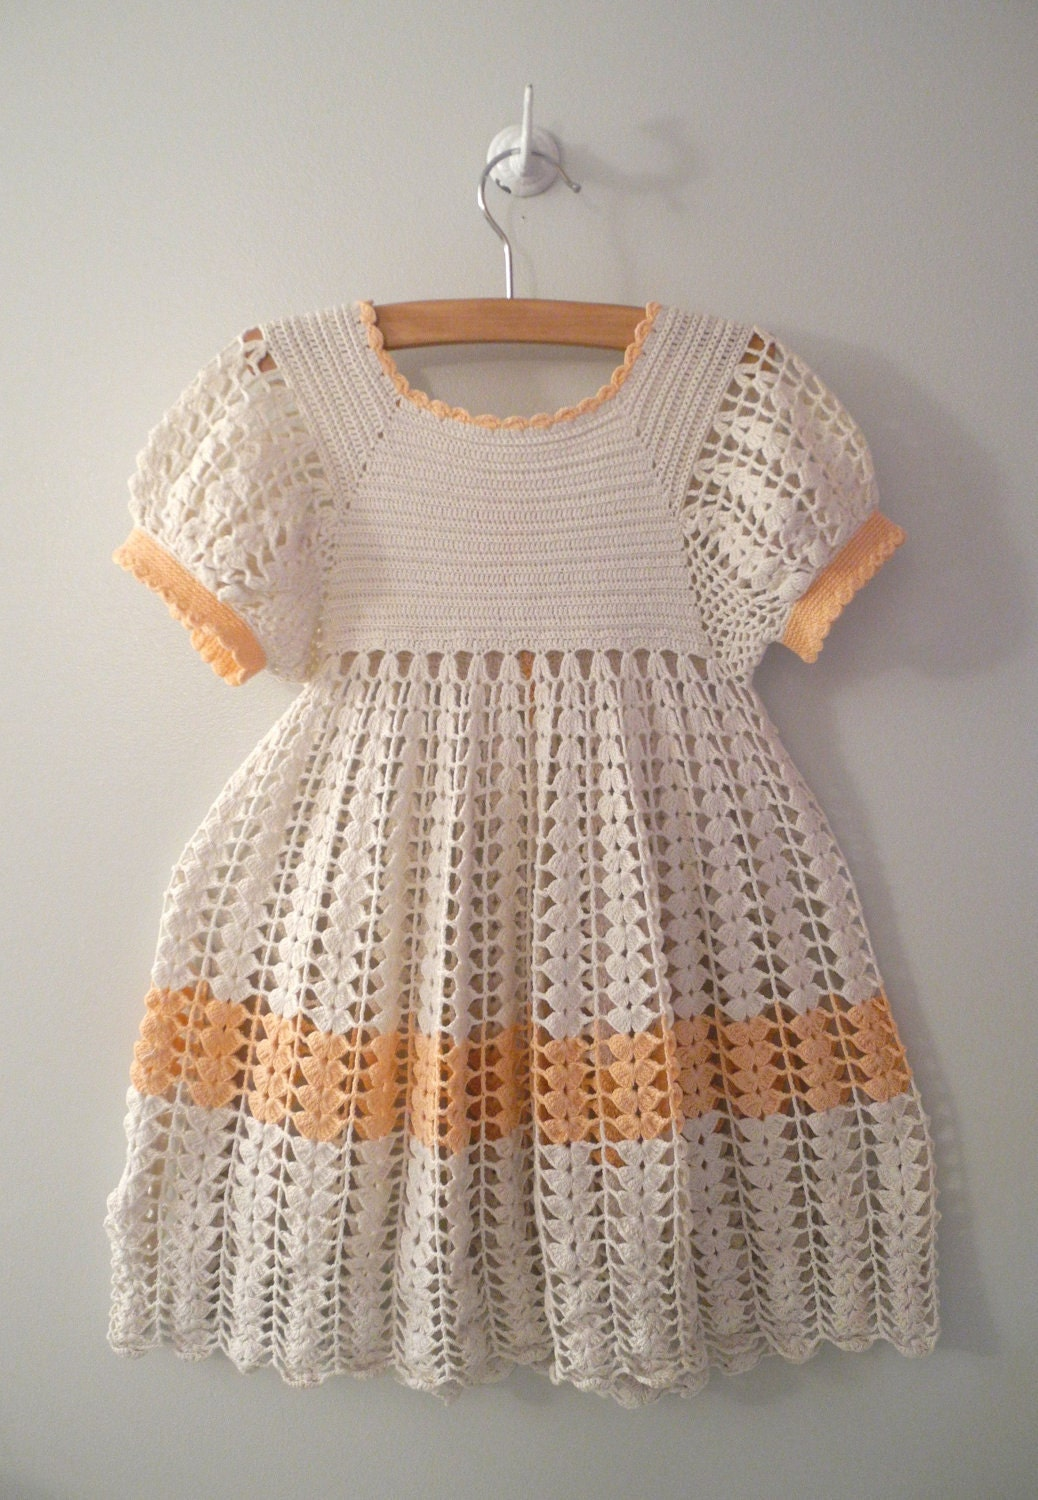 1940's Handmade Ivory and Pink Crocheted Dress - BabyTweeds